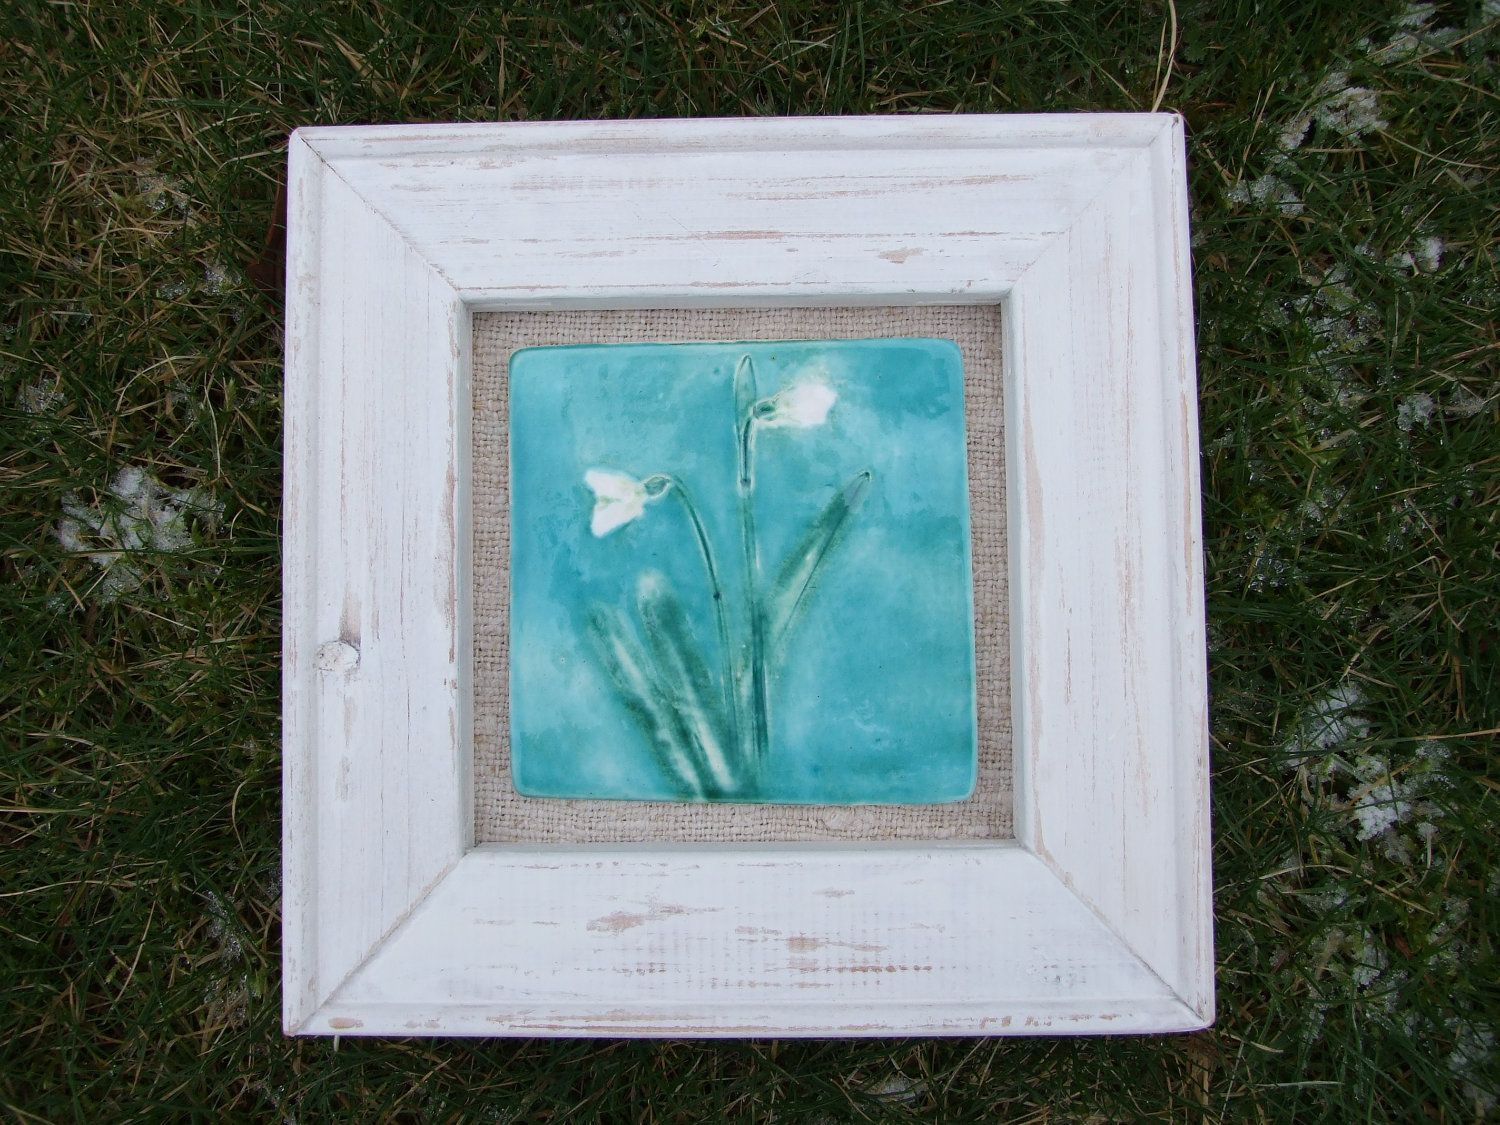 Snowdrop Ceramic Tile Picture Turquoise Sky Rustic Wood Frame